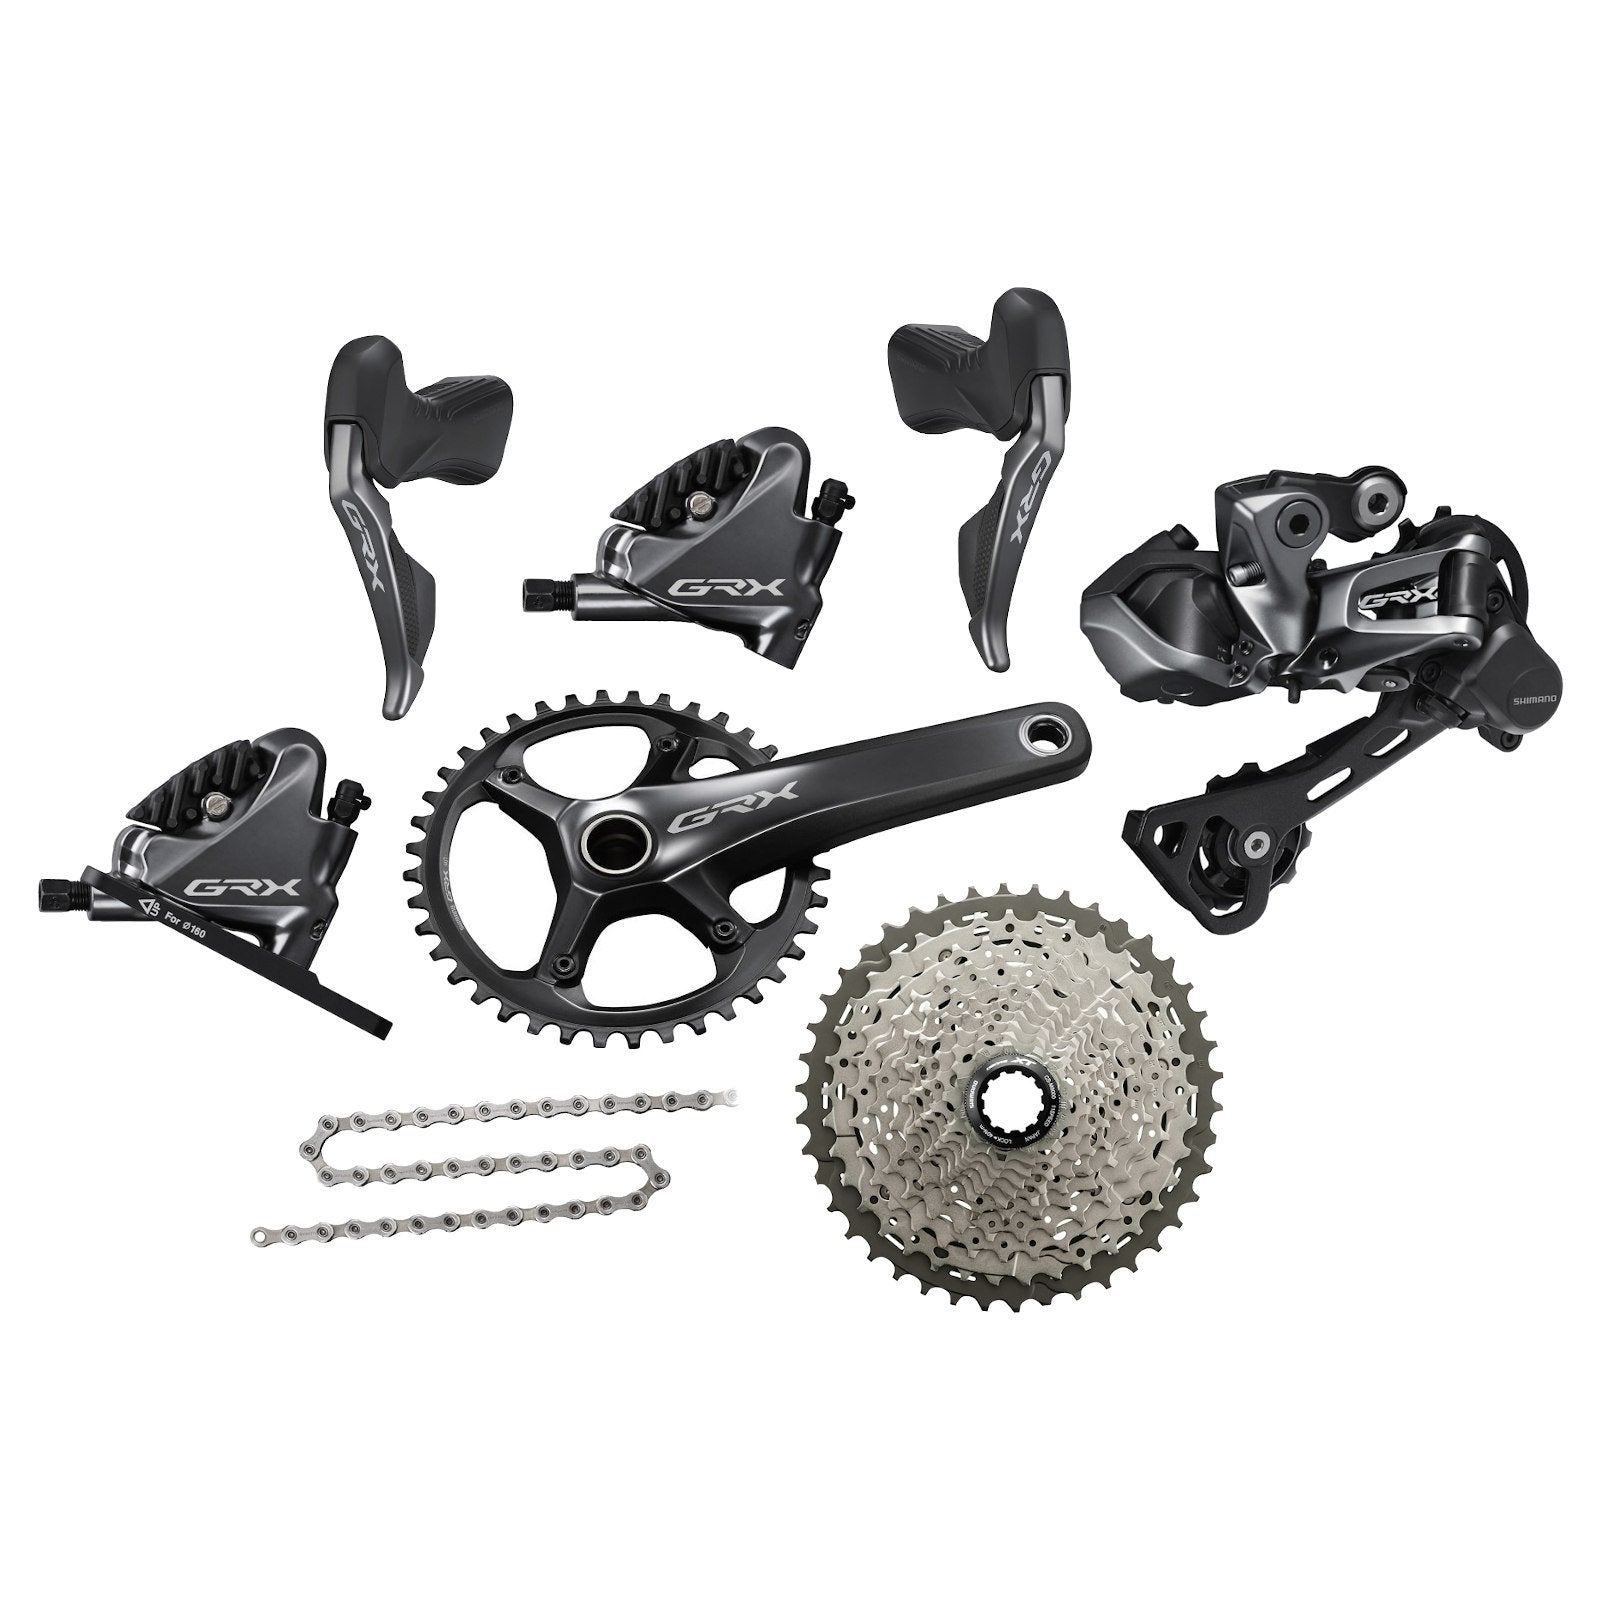 Shimano Components > Groupsets Shimano GRX RX815 Di2 1 x 11 Groupset